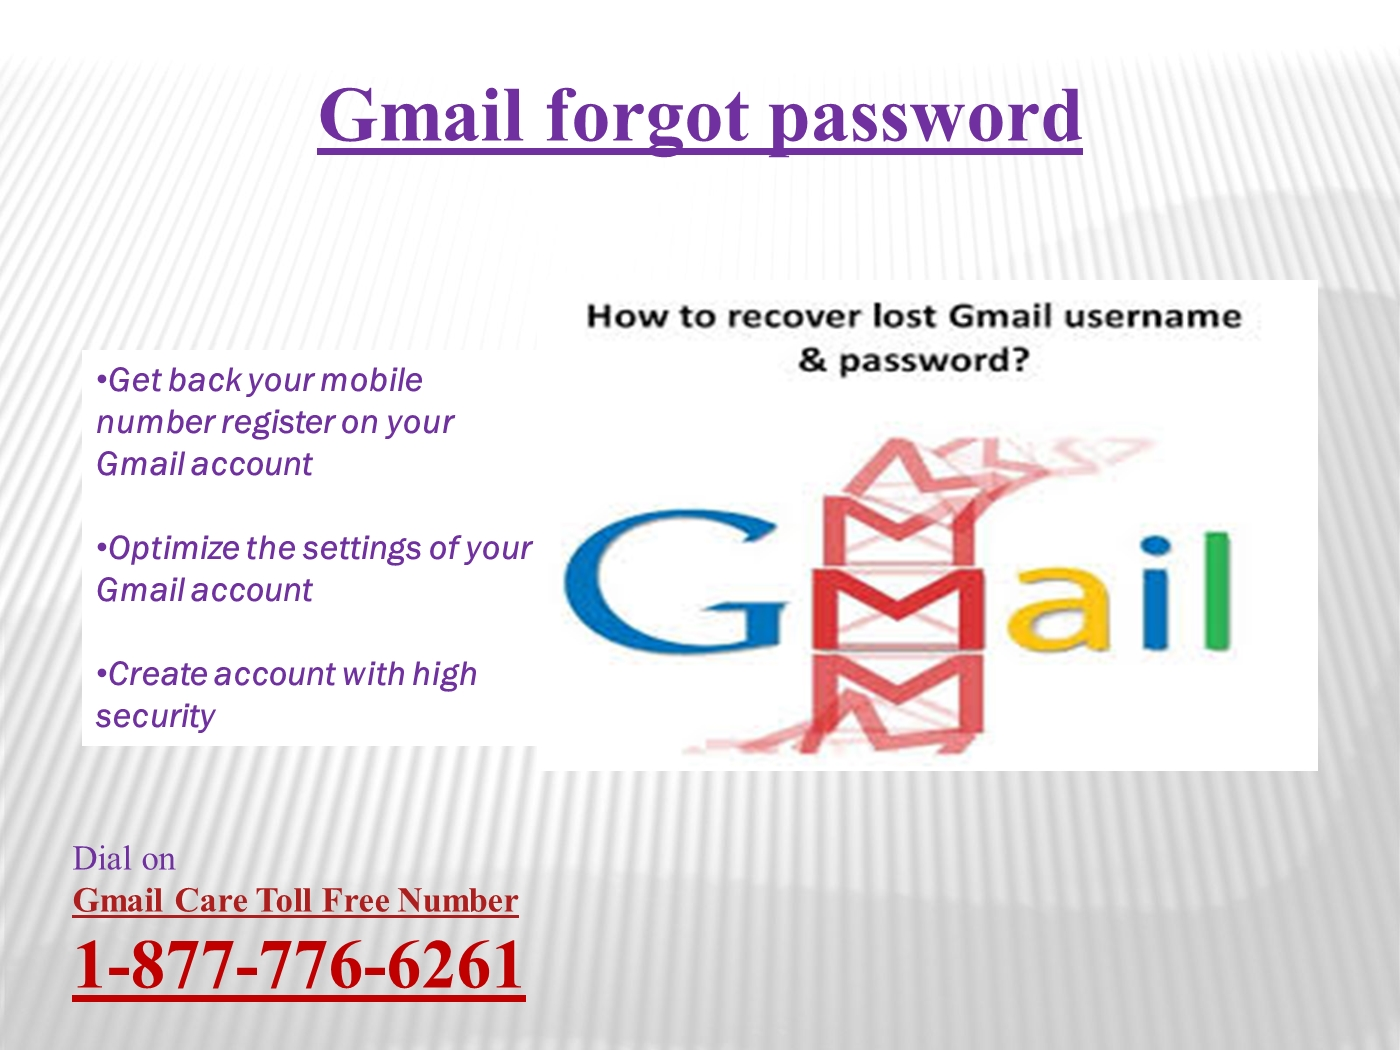 Trouble regarding Recover Gmail password call 1-877-776-6261 Gmail